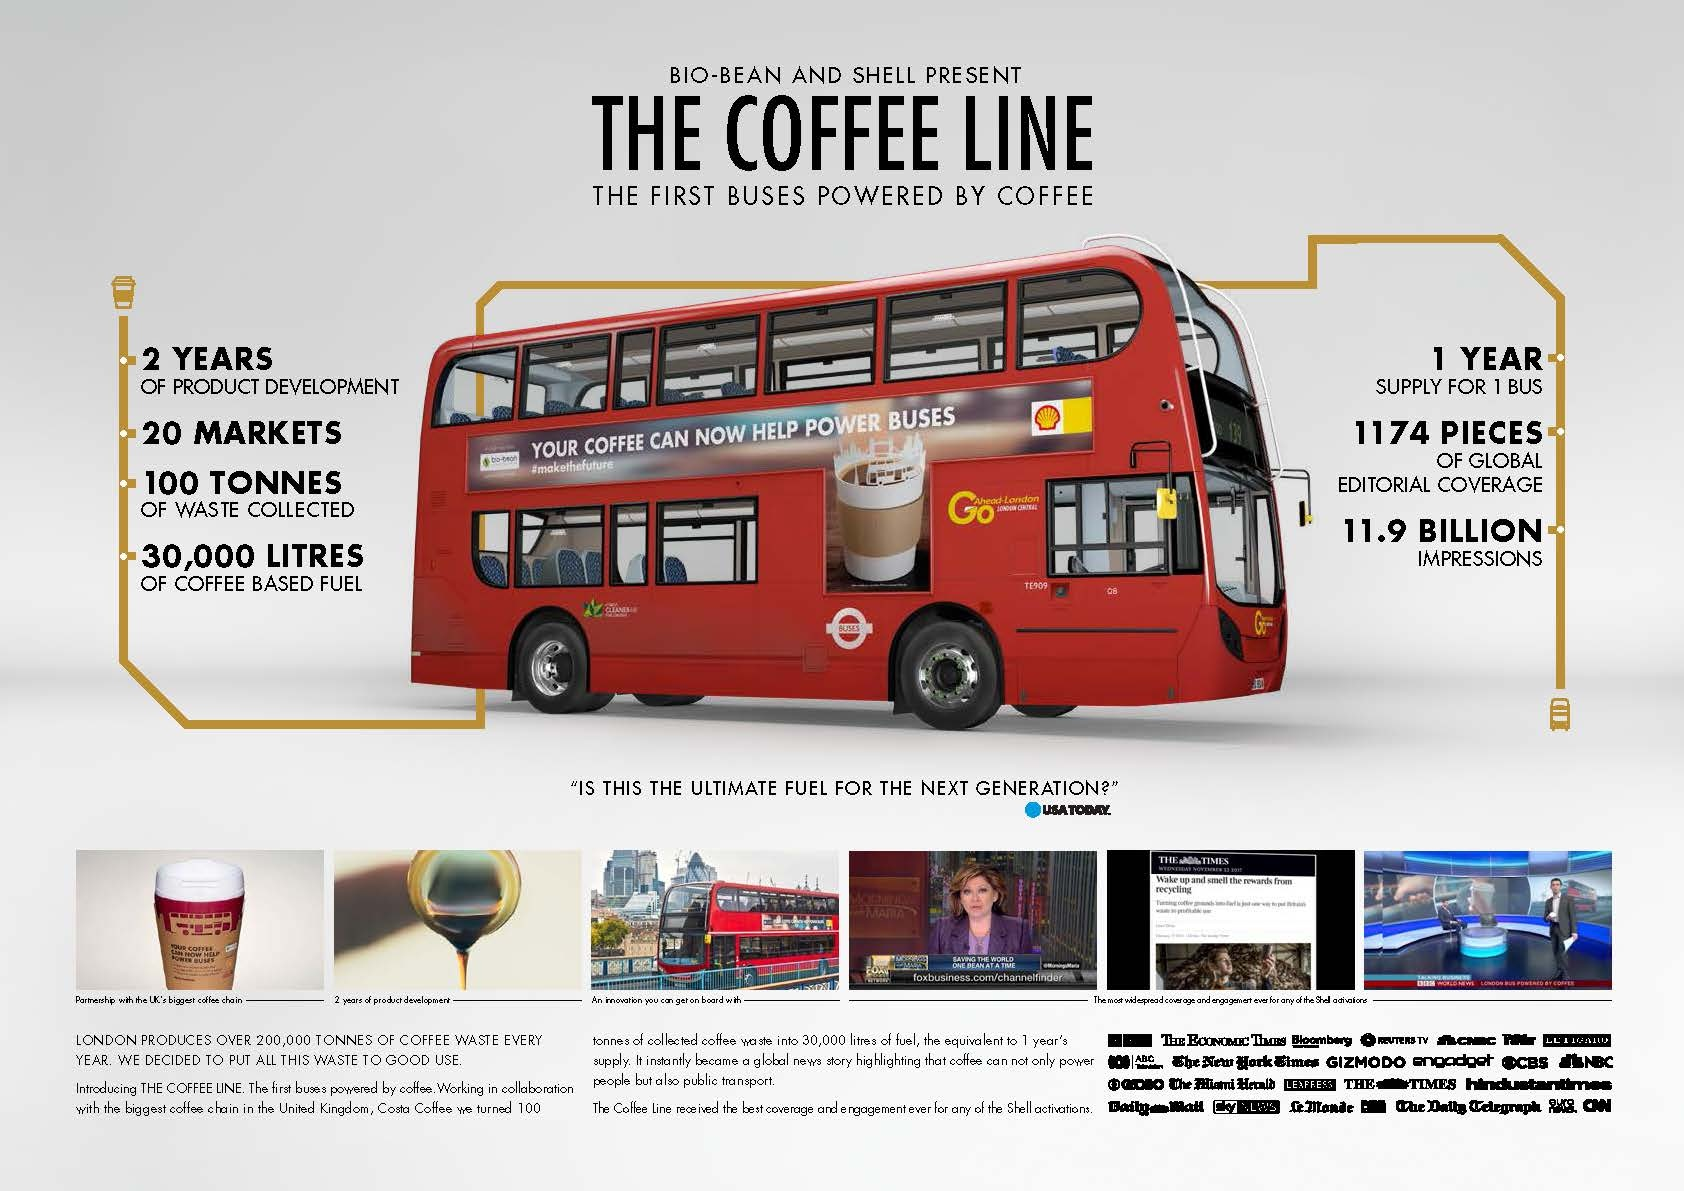 Image Media for The Coffee Line